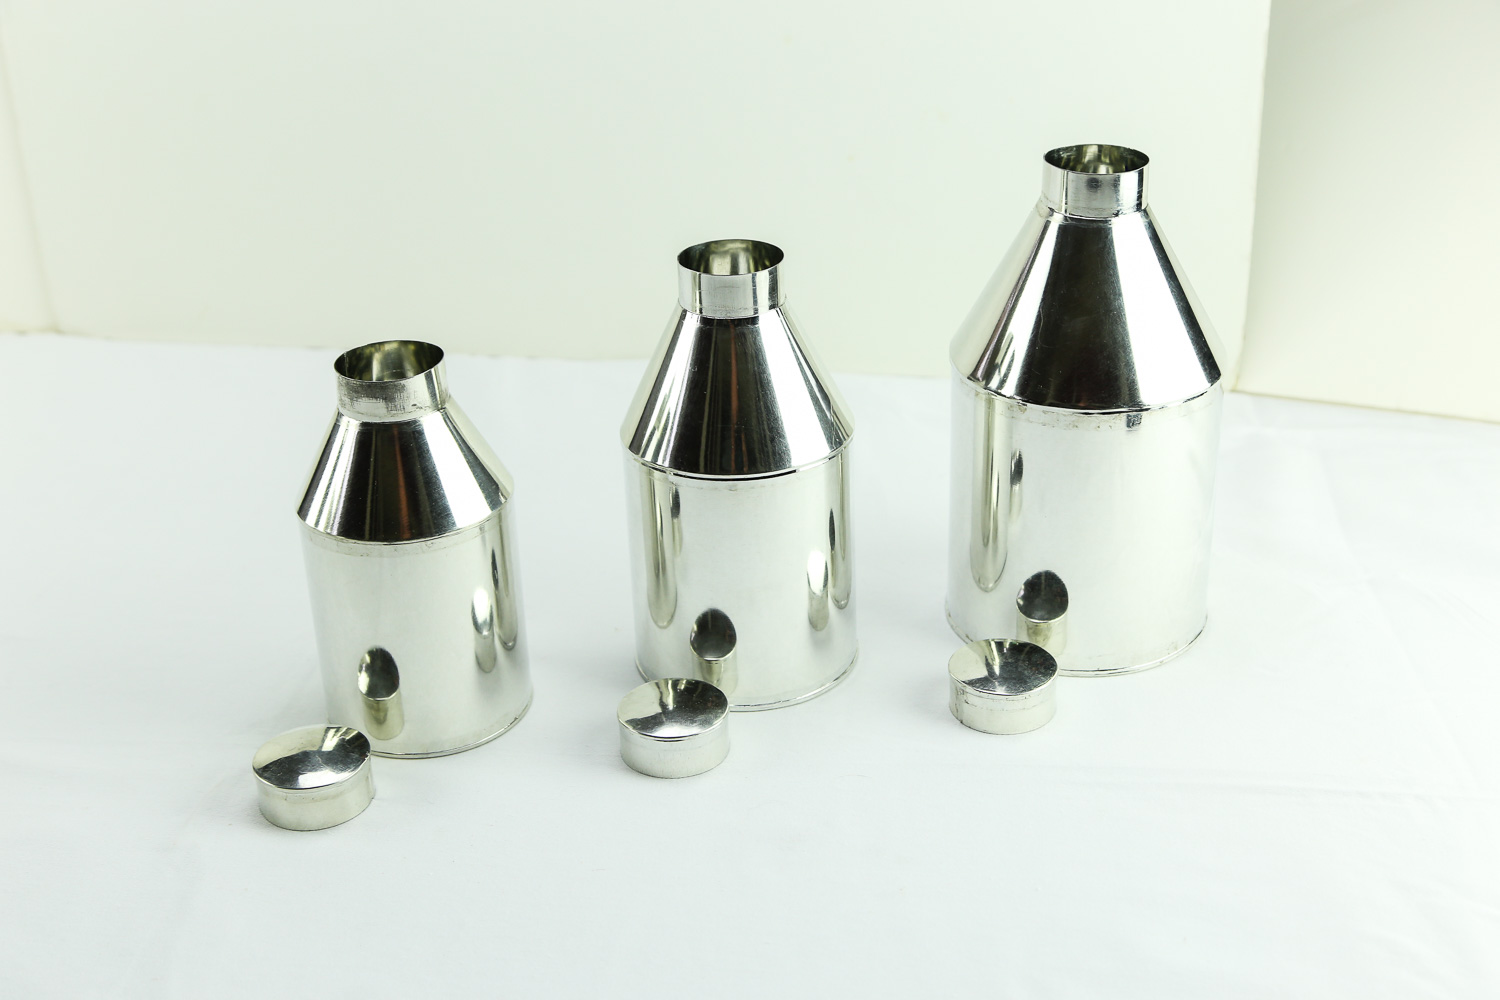 Spice Canisters